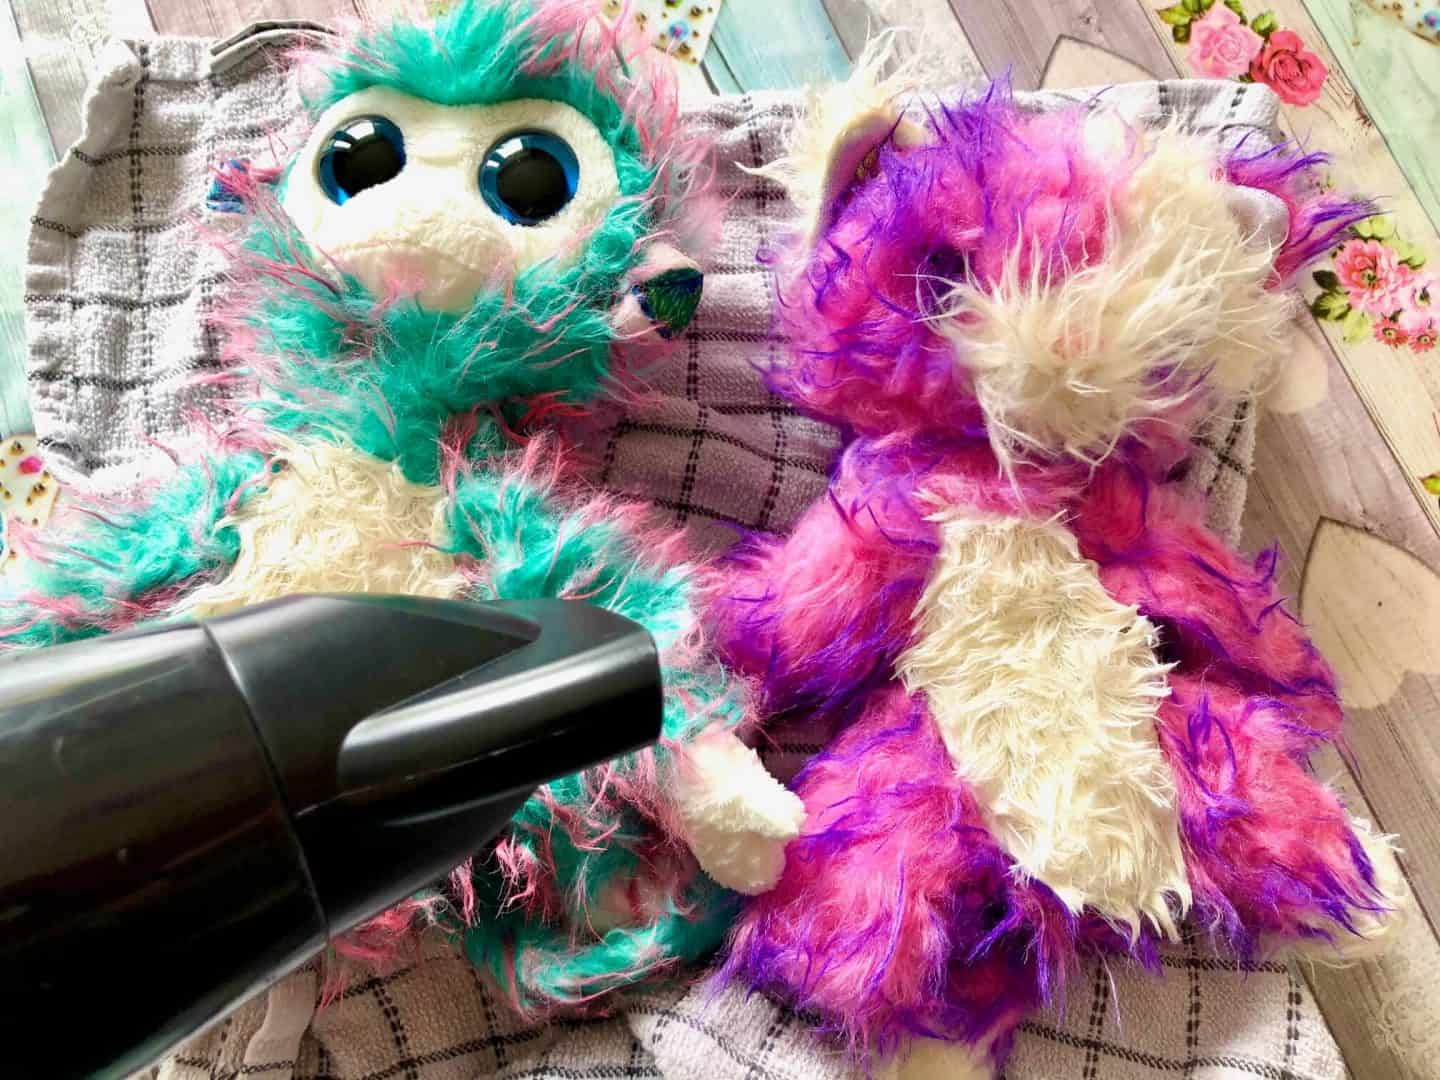 blow drying the Scruff-a-Luvs with a hair drier